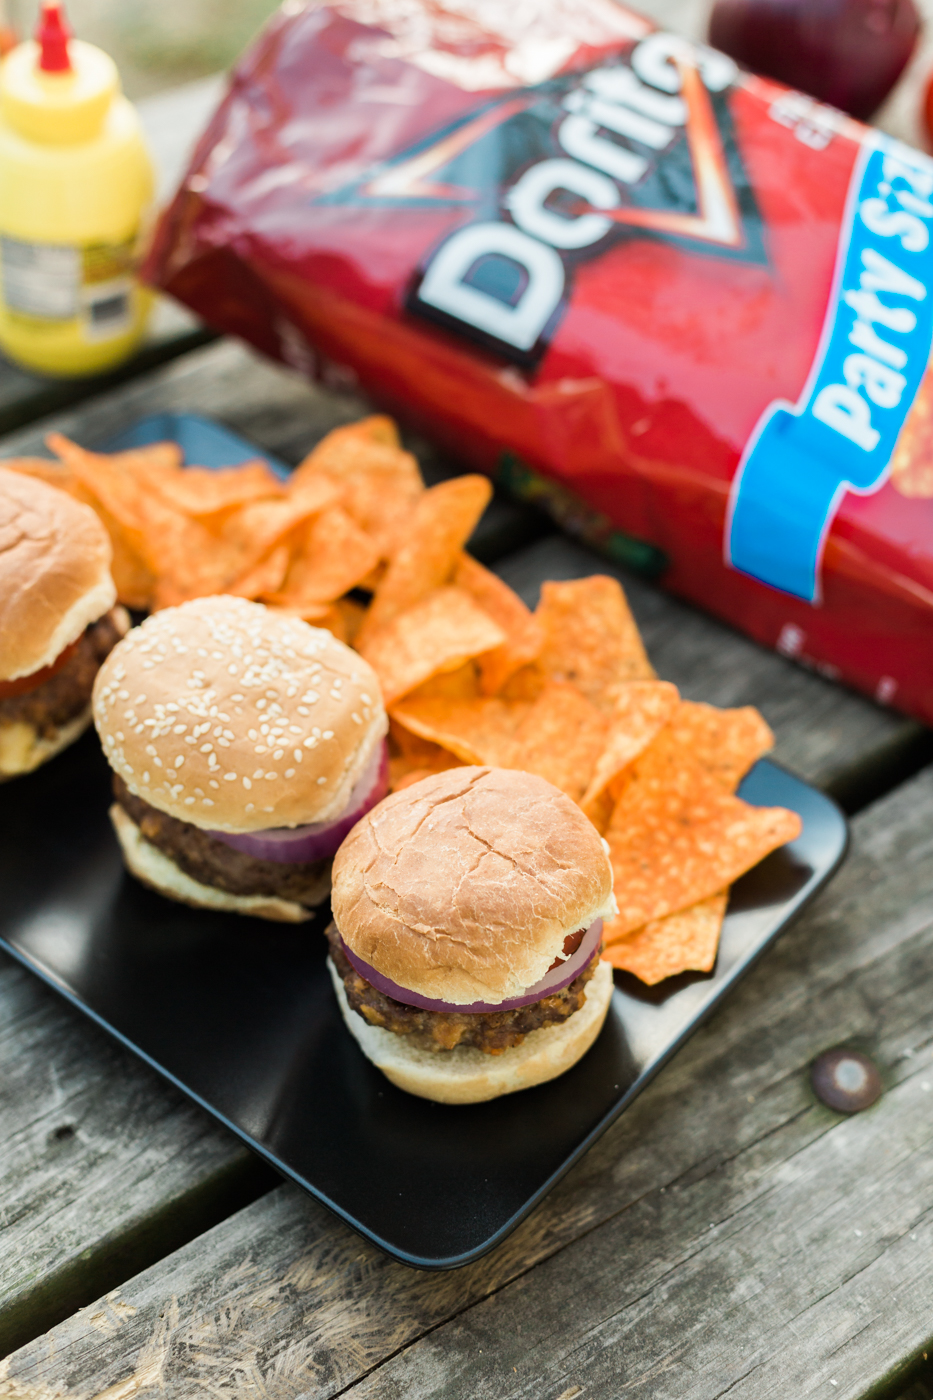 In partnership with Frito-Lay |   Doritos Three Cheese Stuffed Sliders